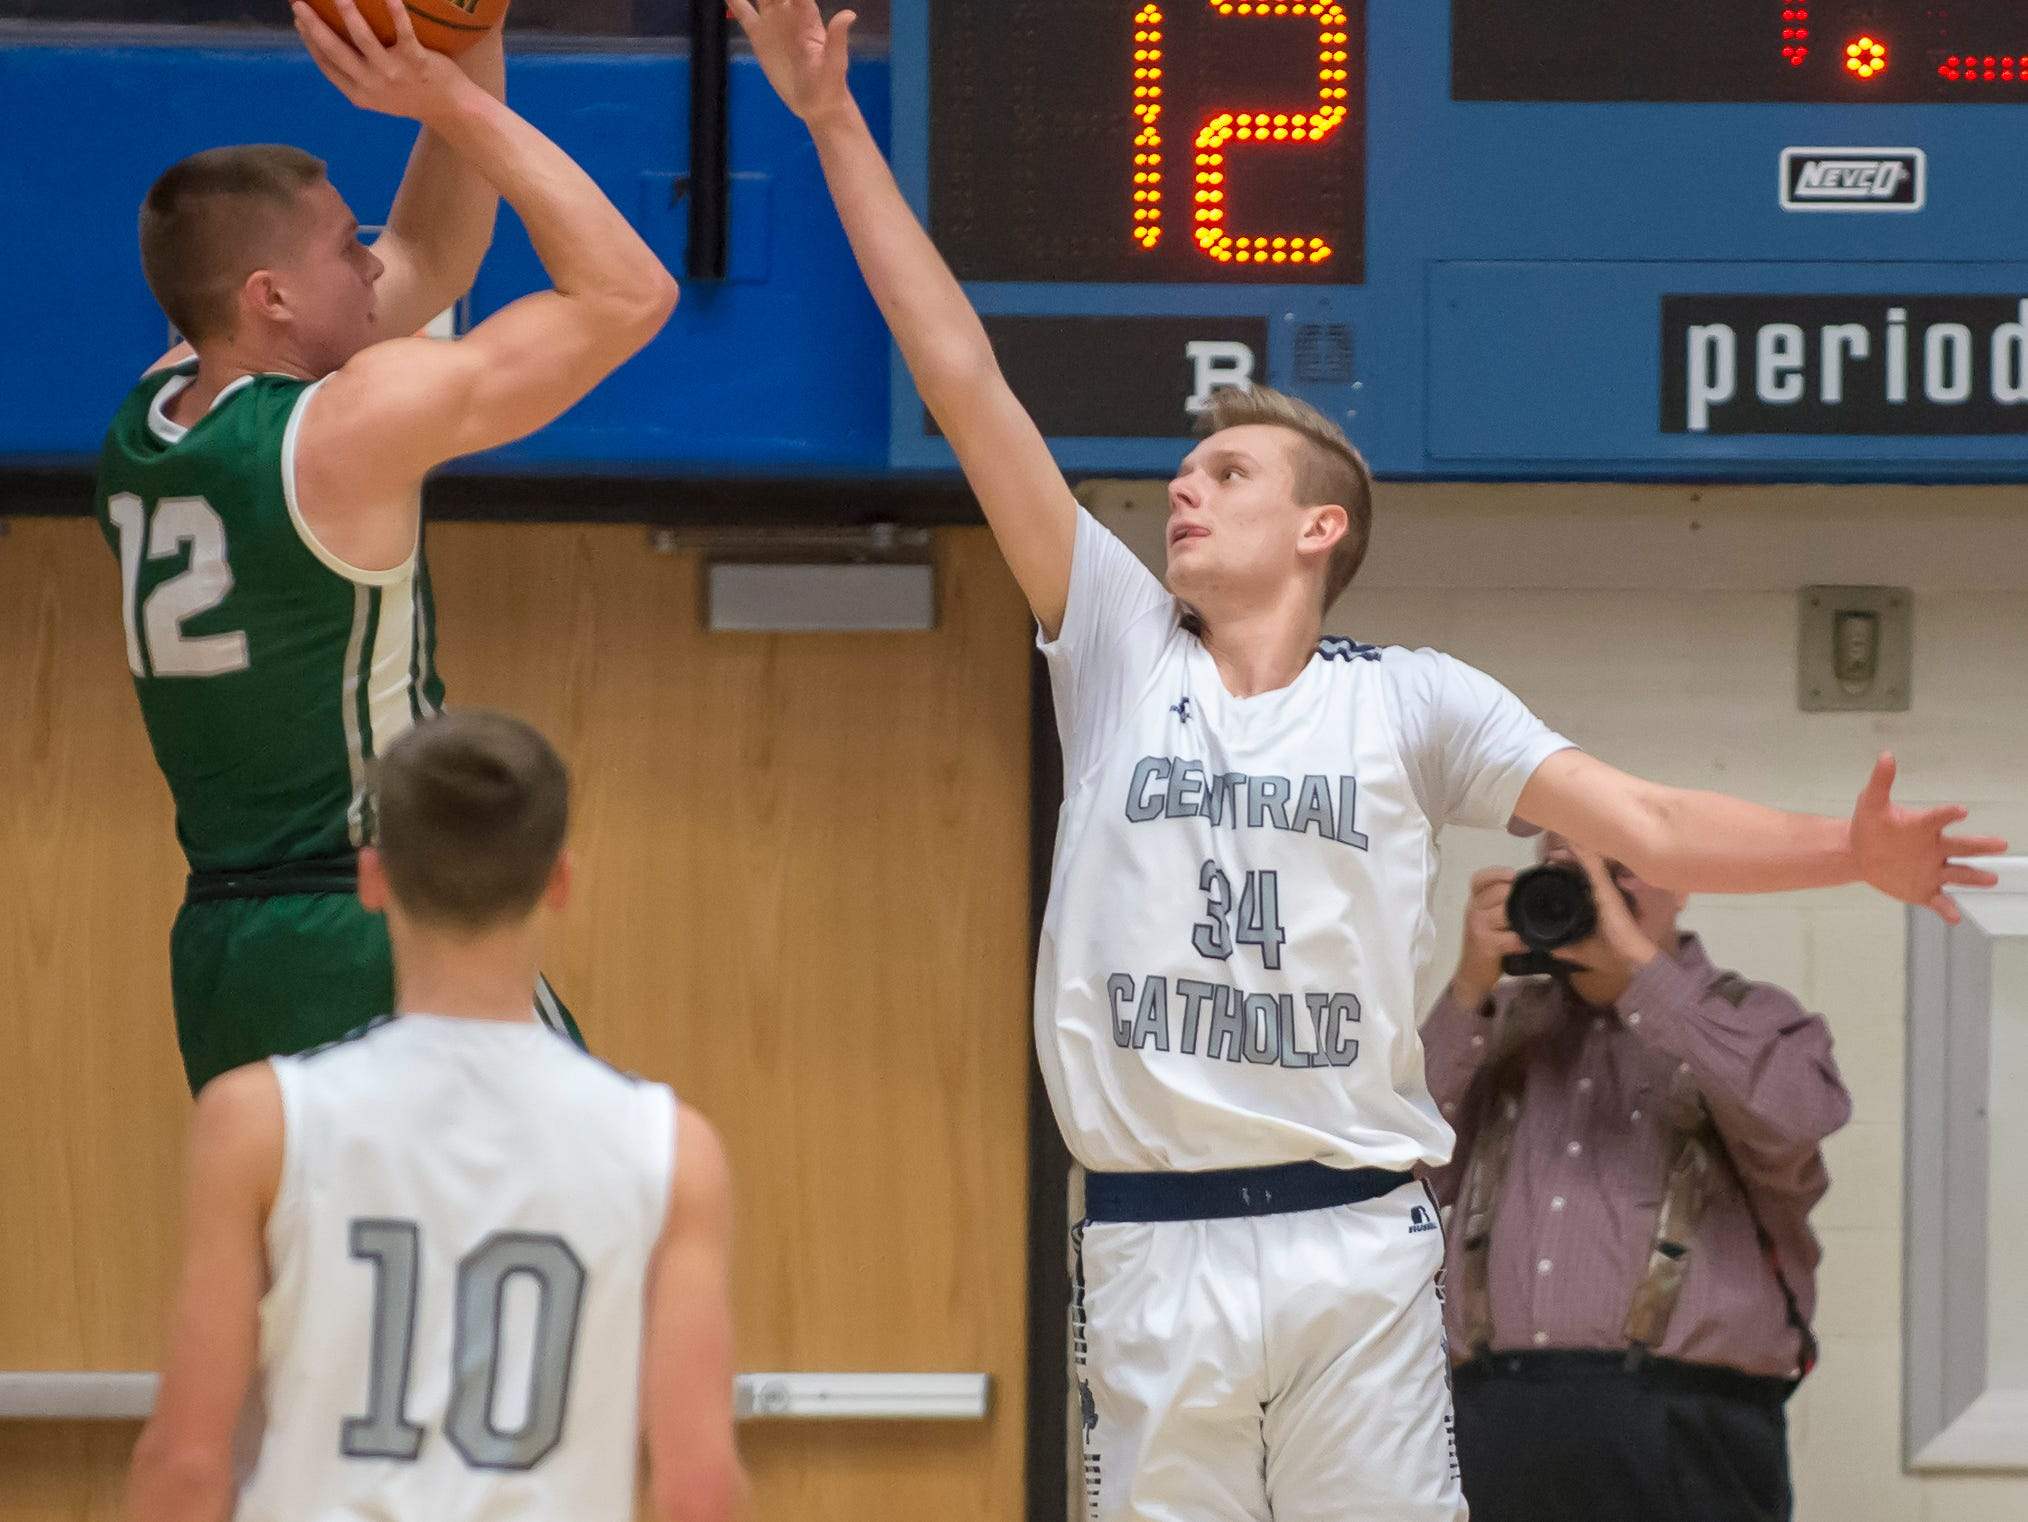 Action from the first round of the Regional between Central Catholic and Randolph Southern from Case Arena on 3/9/19